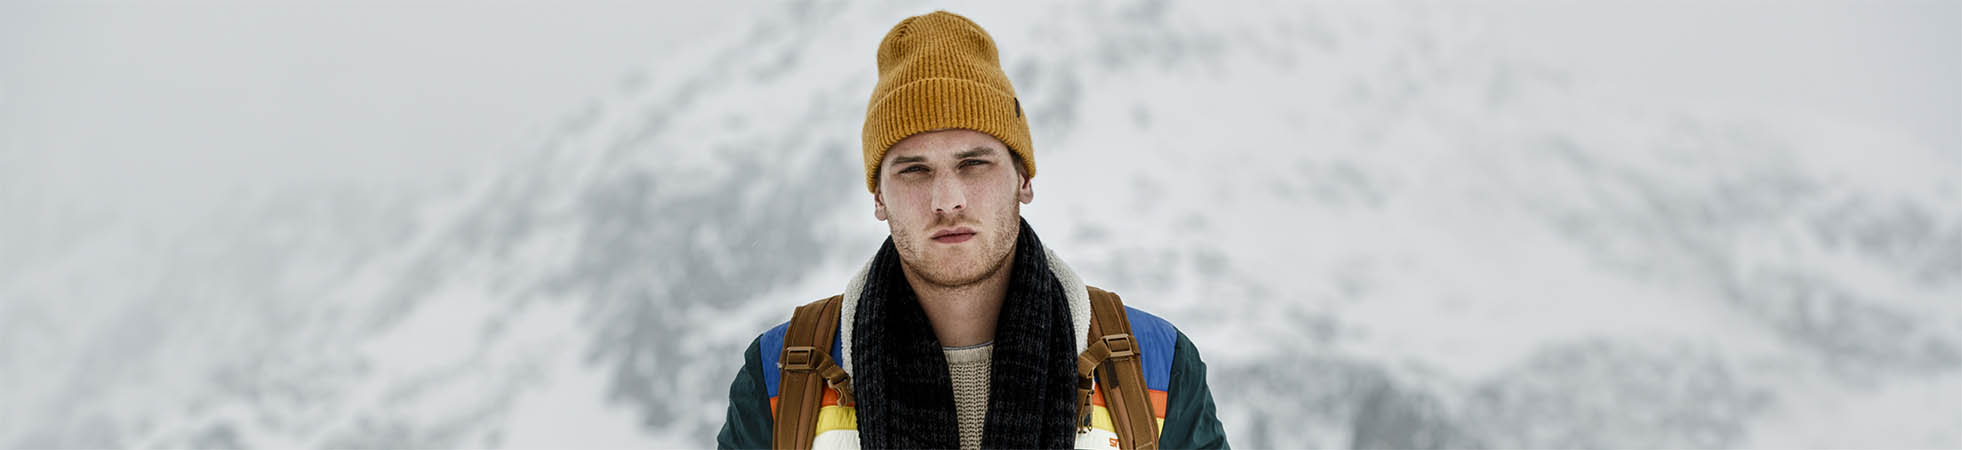 Men\'s winterhats and beanies at Suitable ✔ Different colours and styles ✔ Brands like Barts, Napapijri and more ✔ Shop online